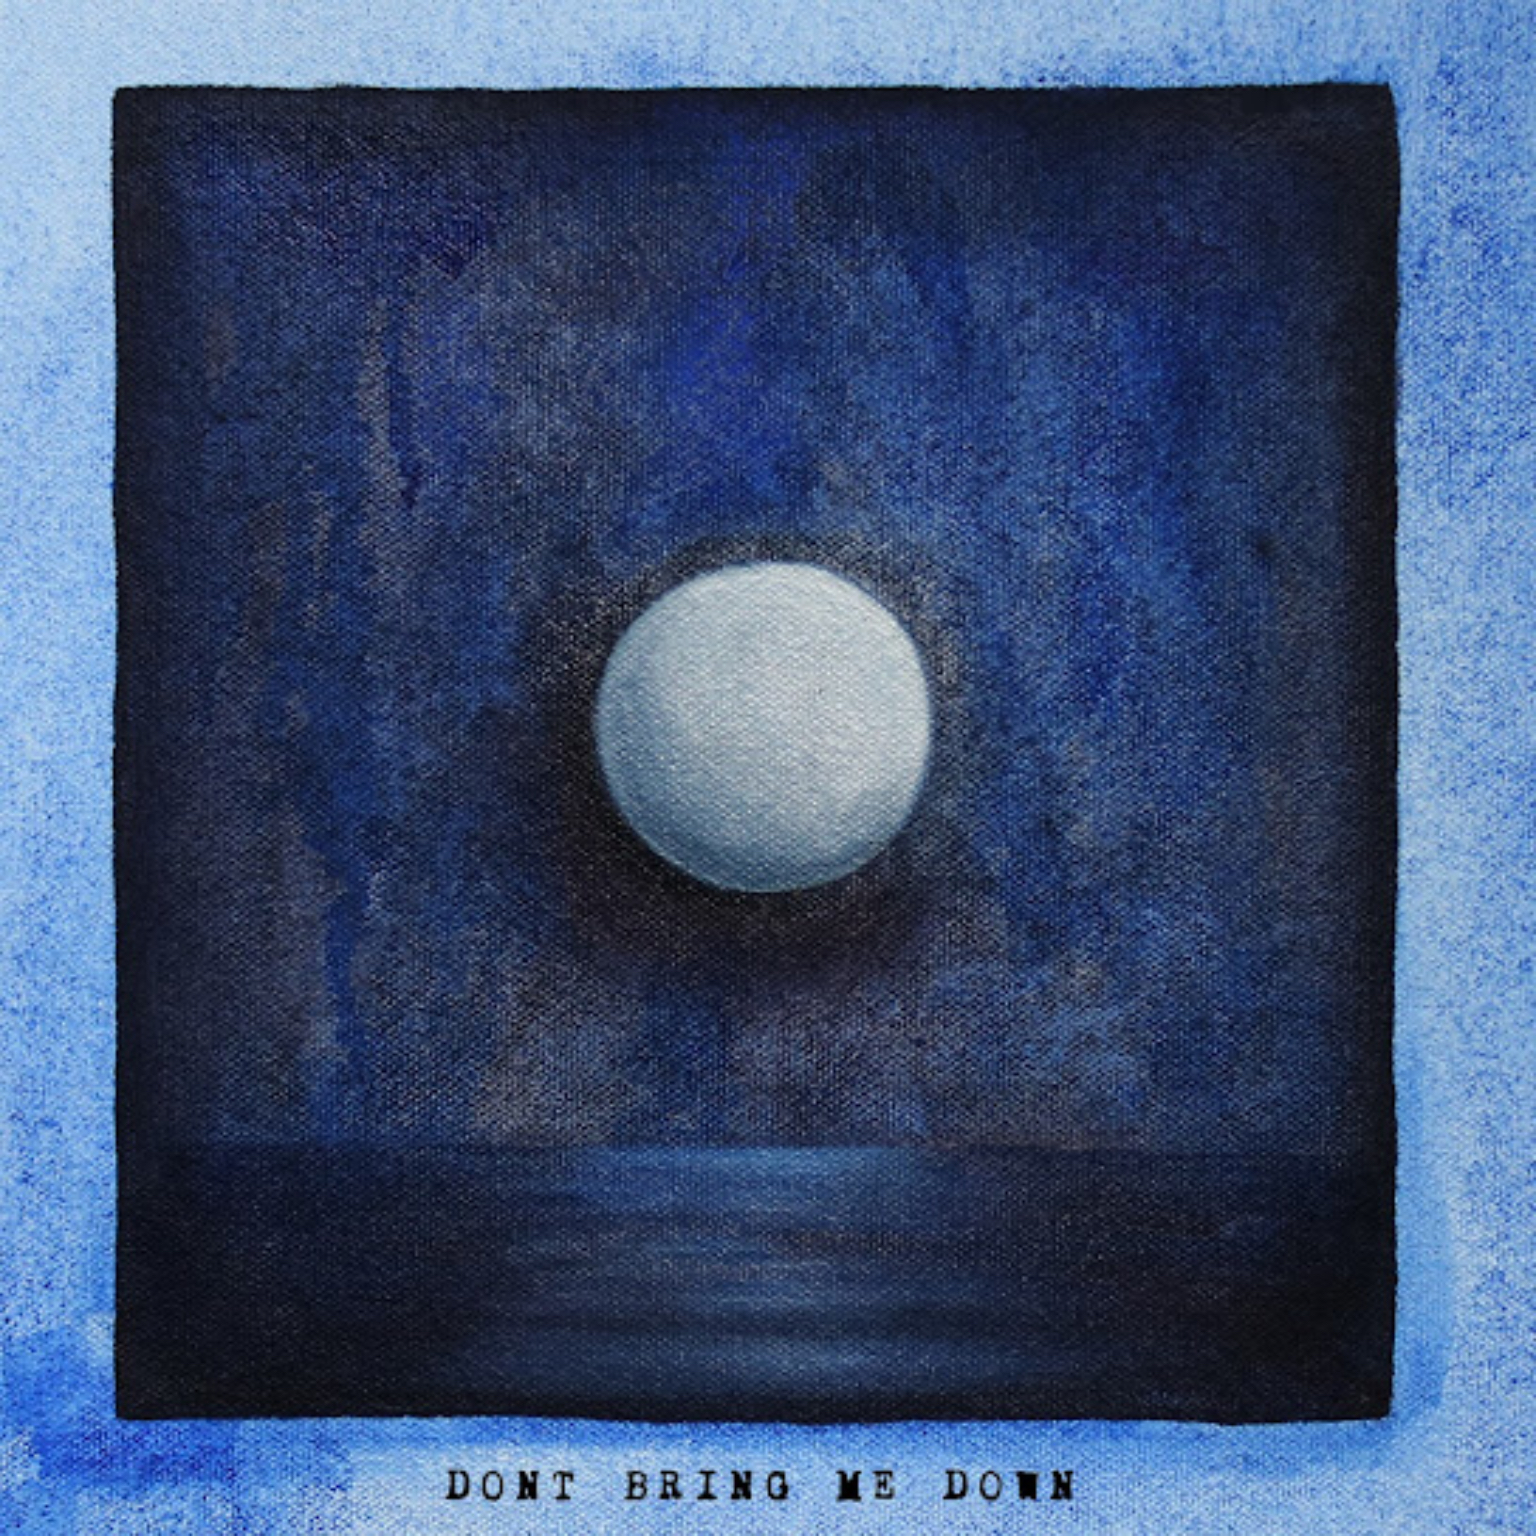 Art for Dont Bring Me Down by Two Feet